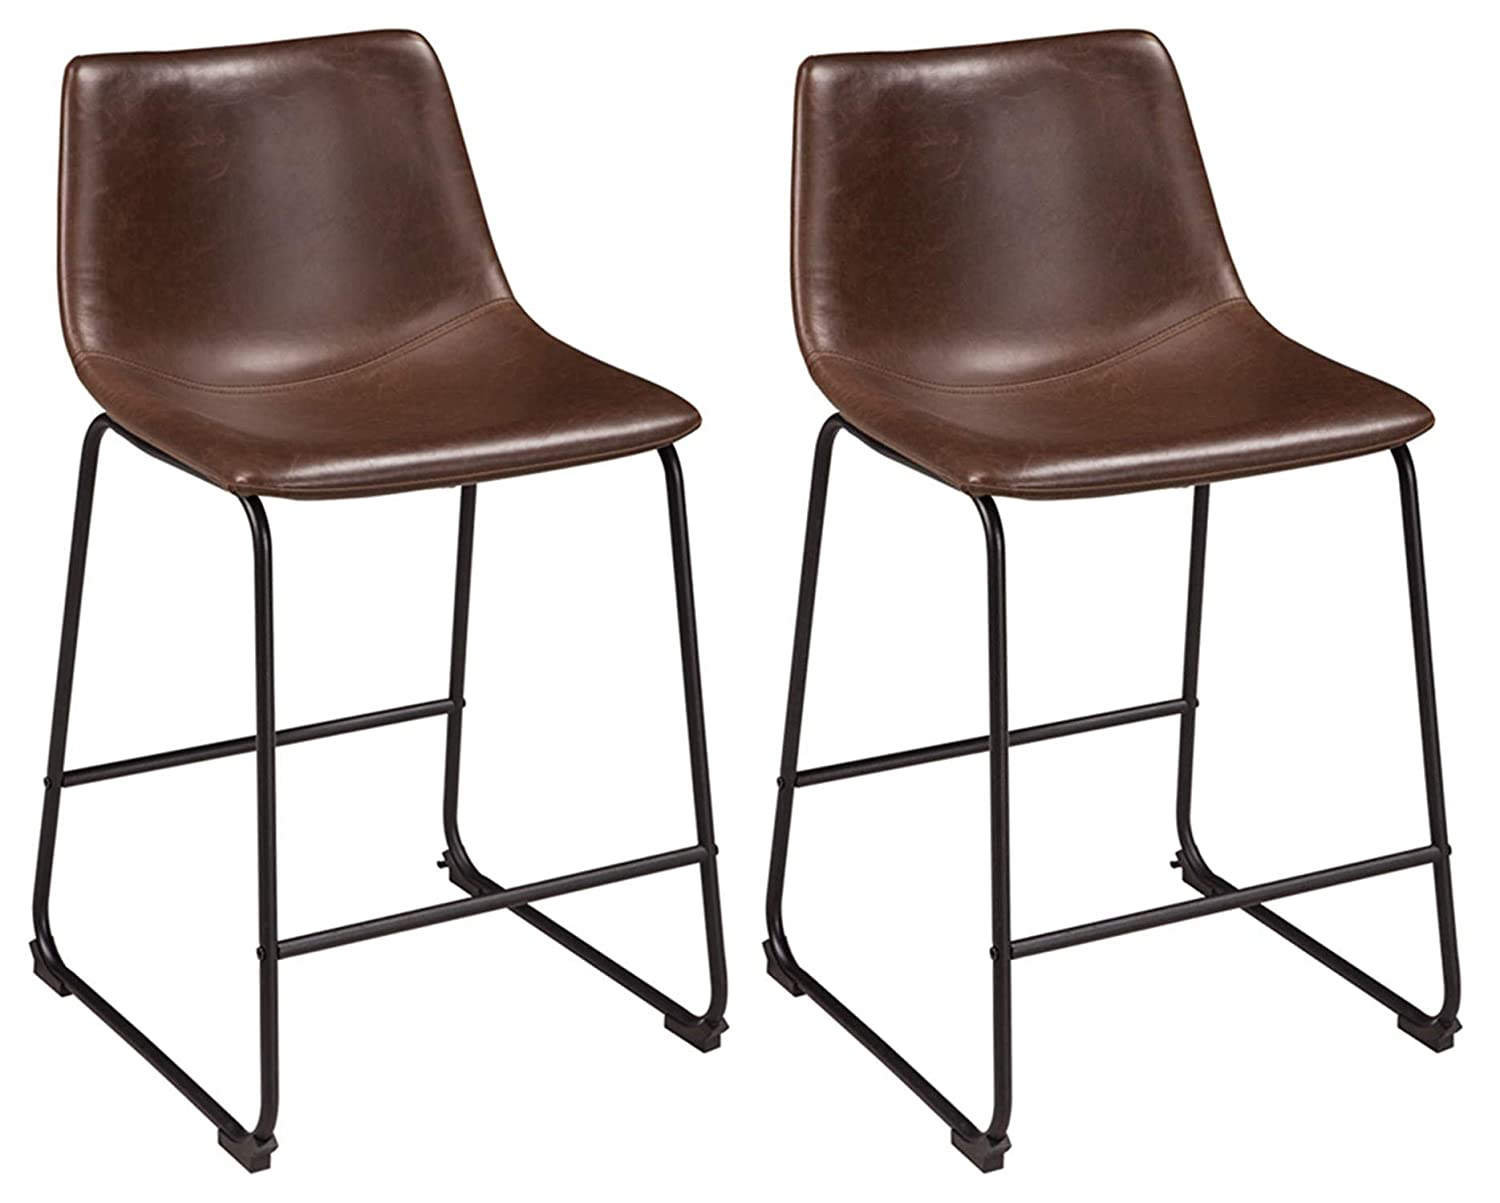 Ashley Furniture Signature Design - Centiar Counter Height Barstool - Set of 2 -Mid Century Modern Style - Black Metal Base - Brown Faux Leather Bucket Seat